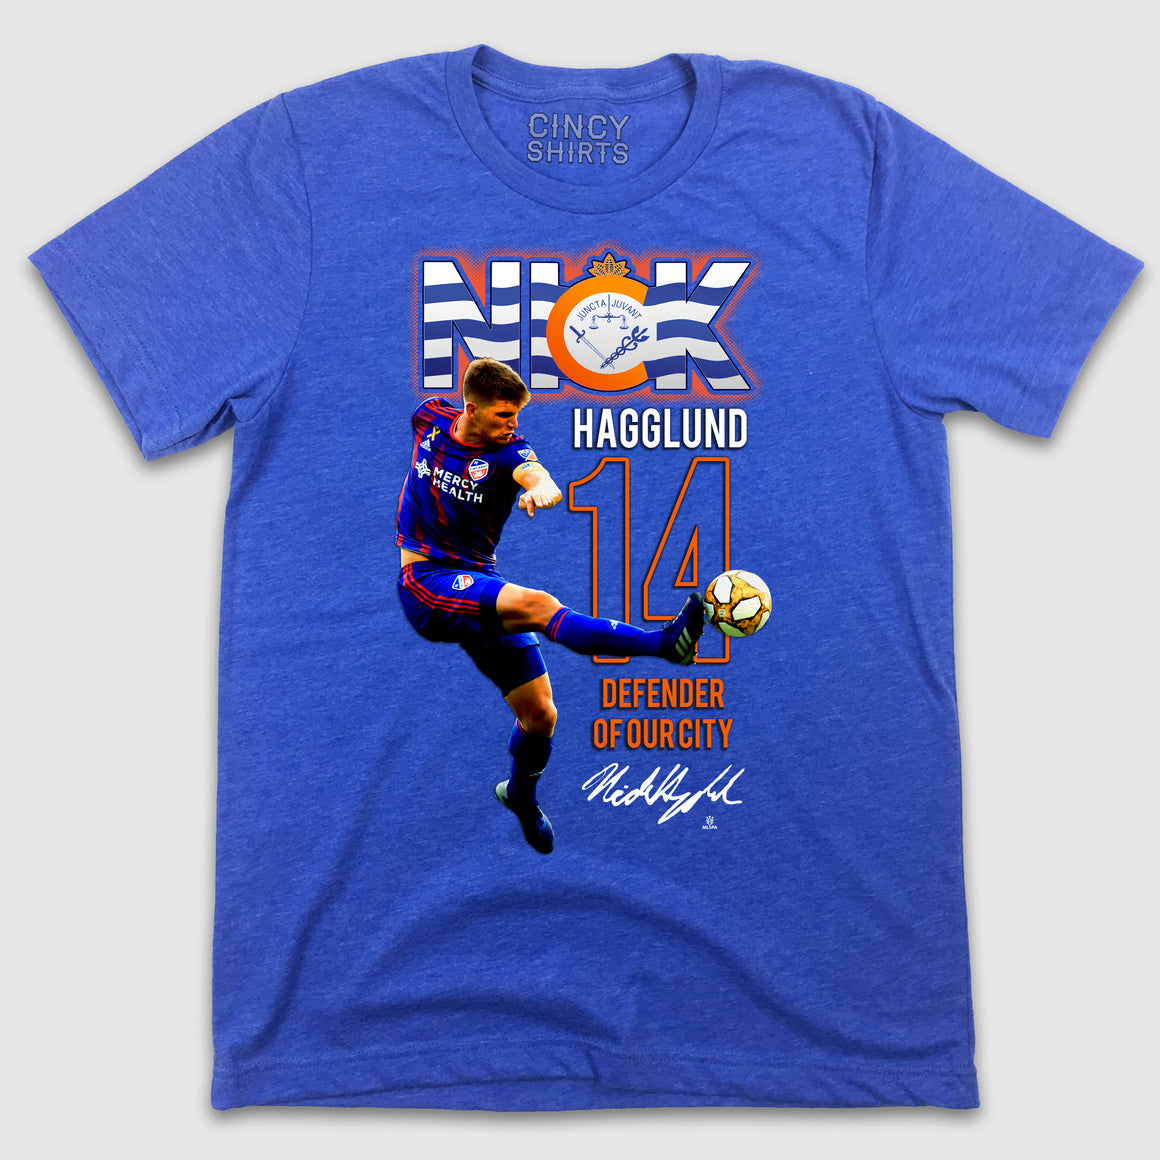 Official Nick Hagglund MLSPA Shirt